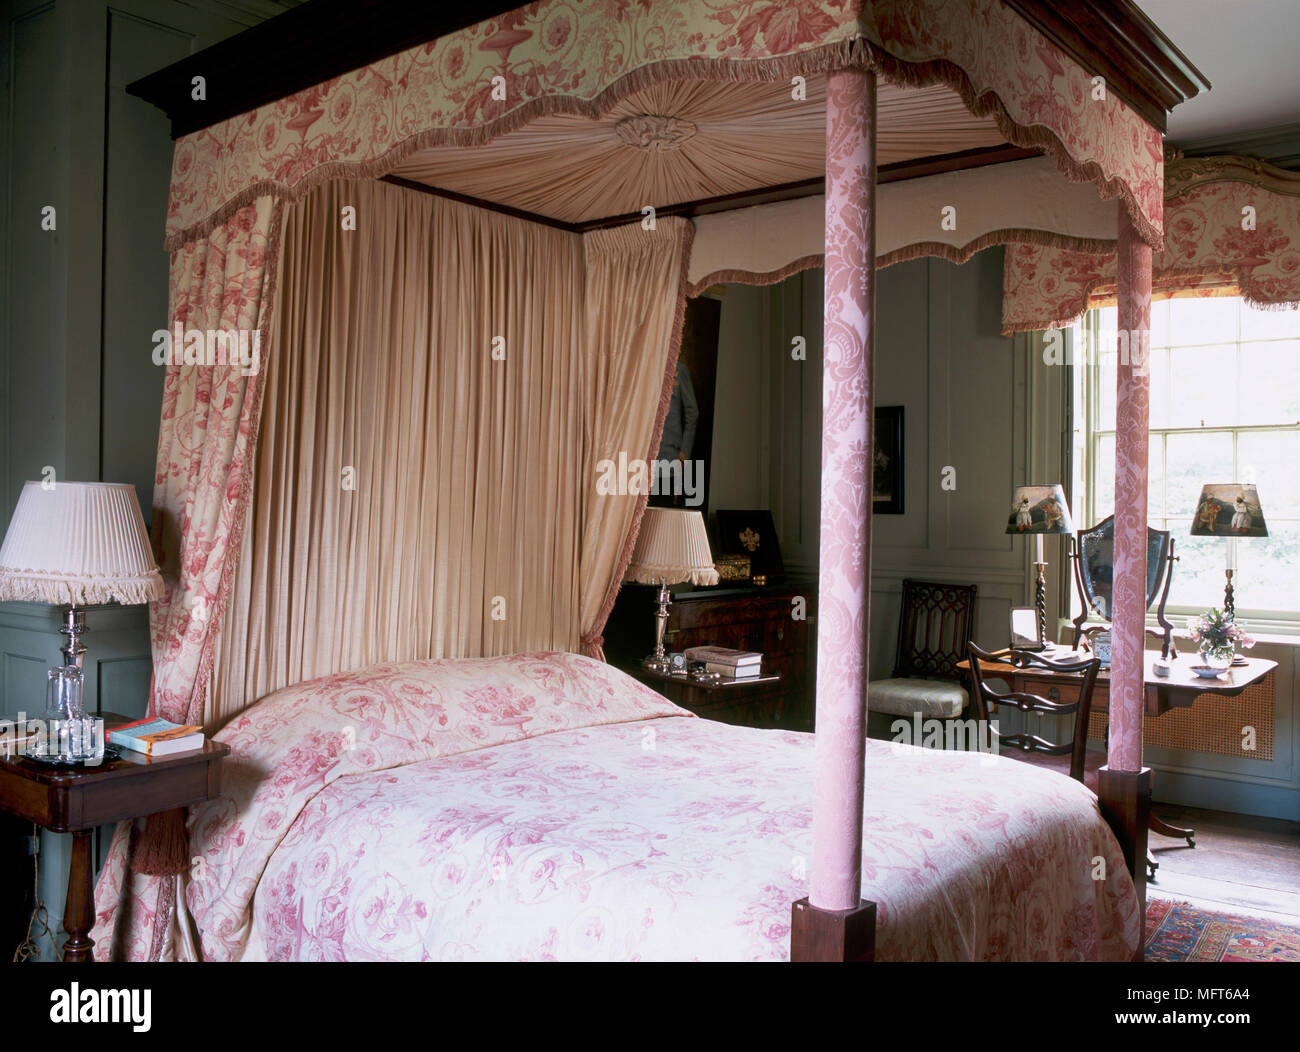 Bed Curtains Romantic High Resolution Stock Photography And Images Alamy